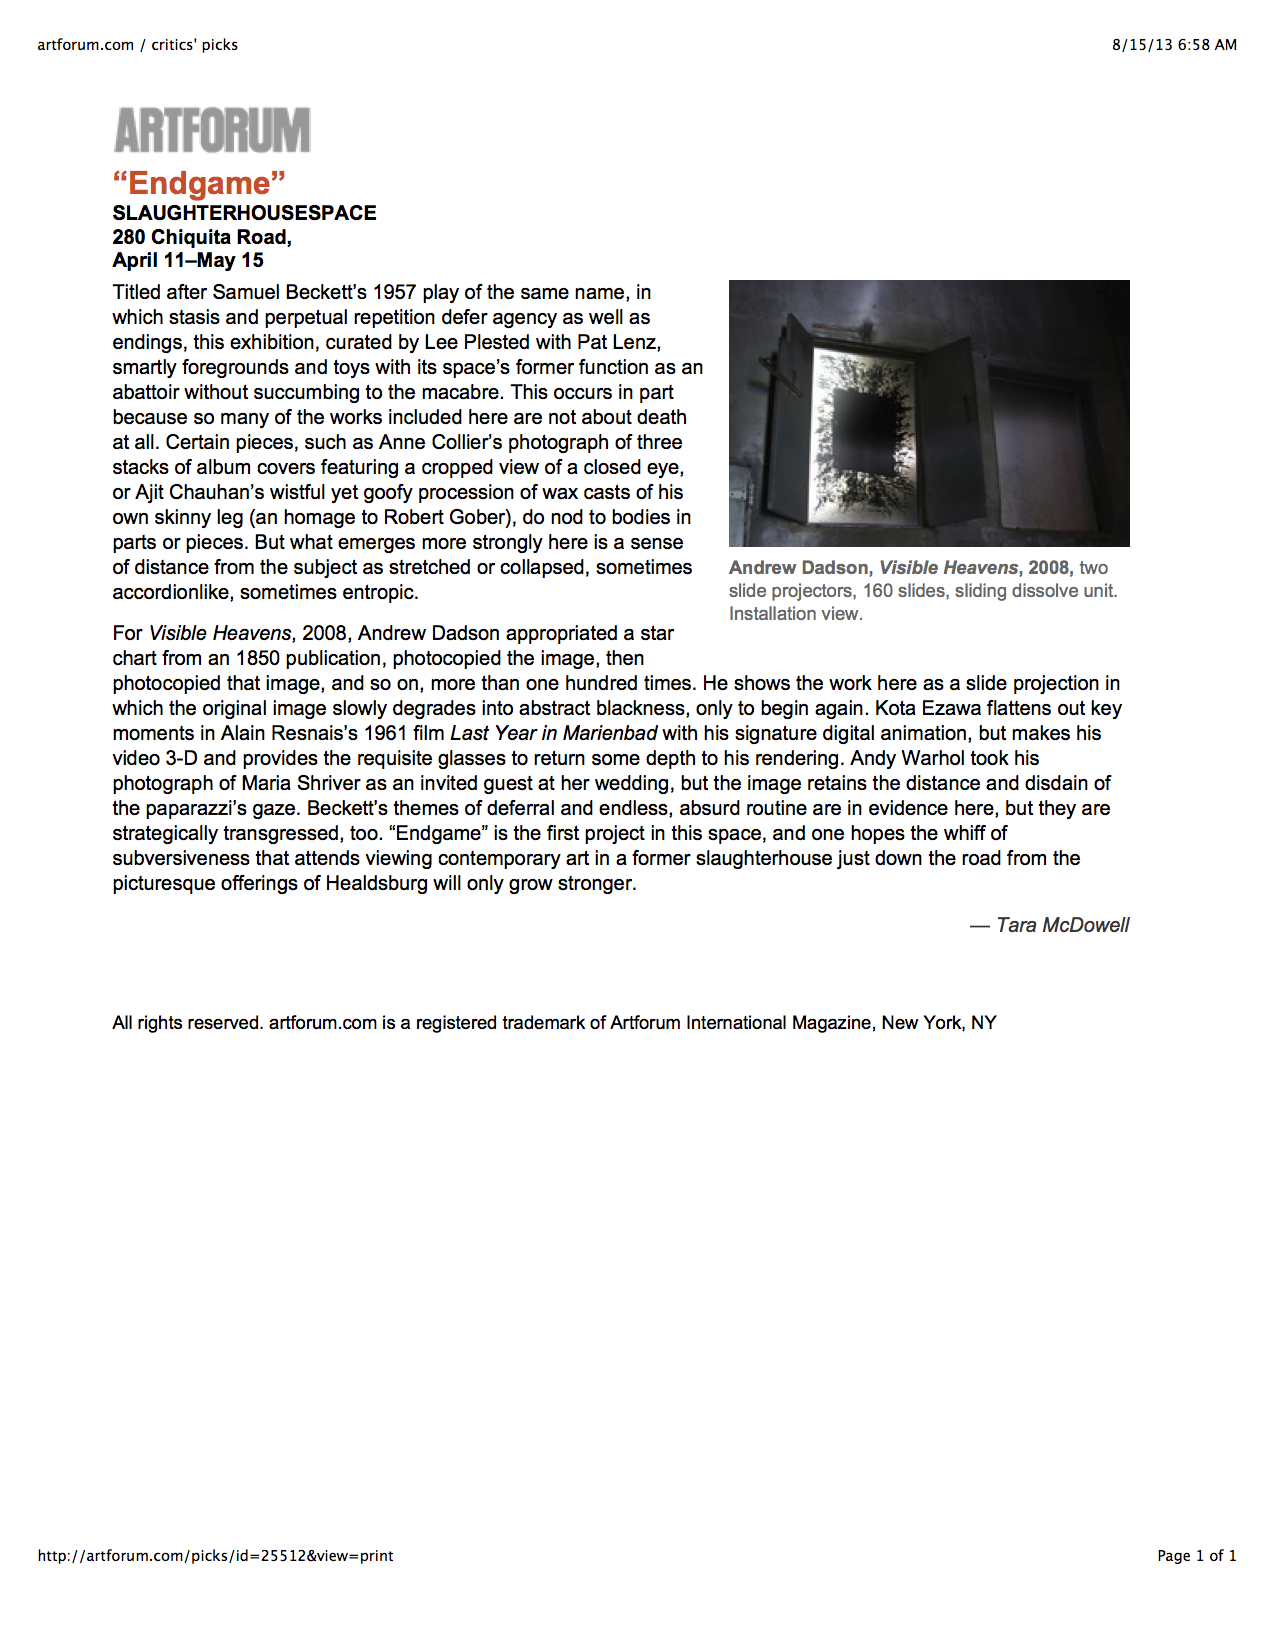 artforum.com : critics' picks.jpg